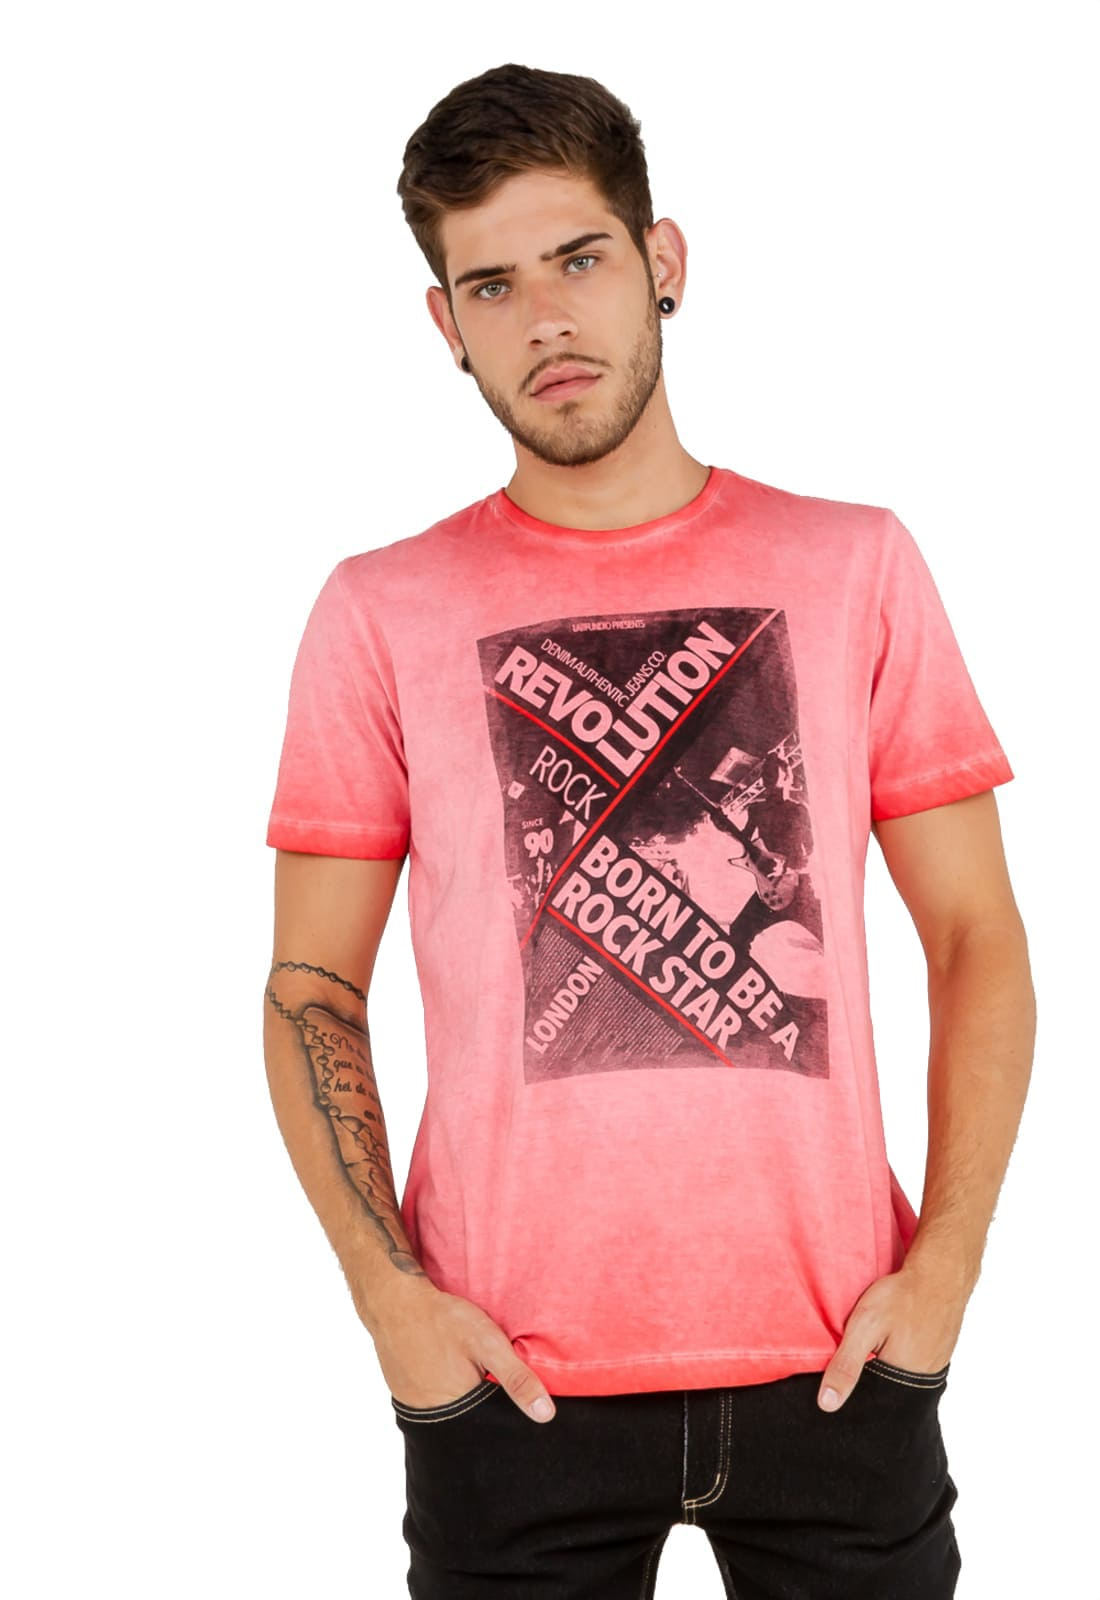 2 T-shirts Masculina - Estampa Rock Star - Motorcycle Club